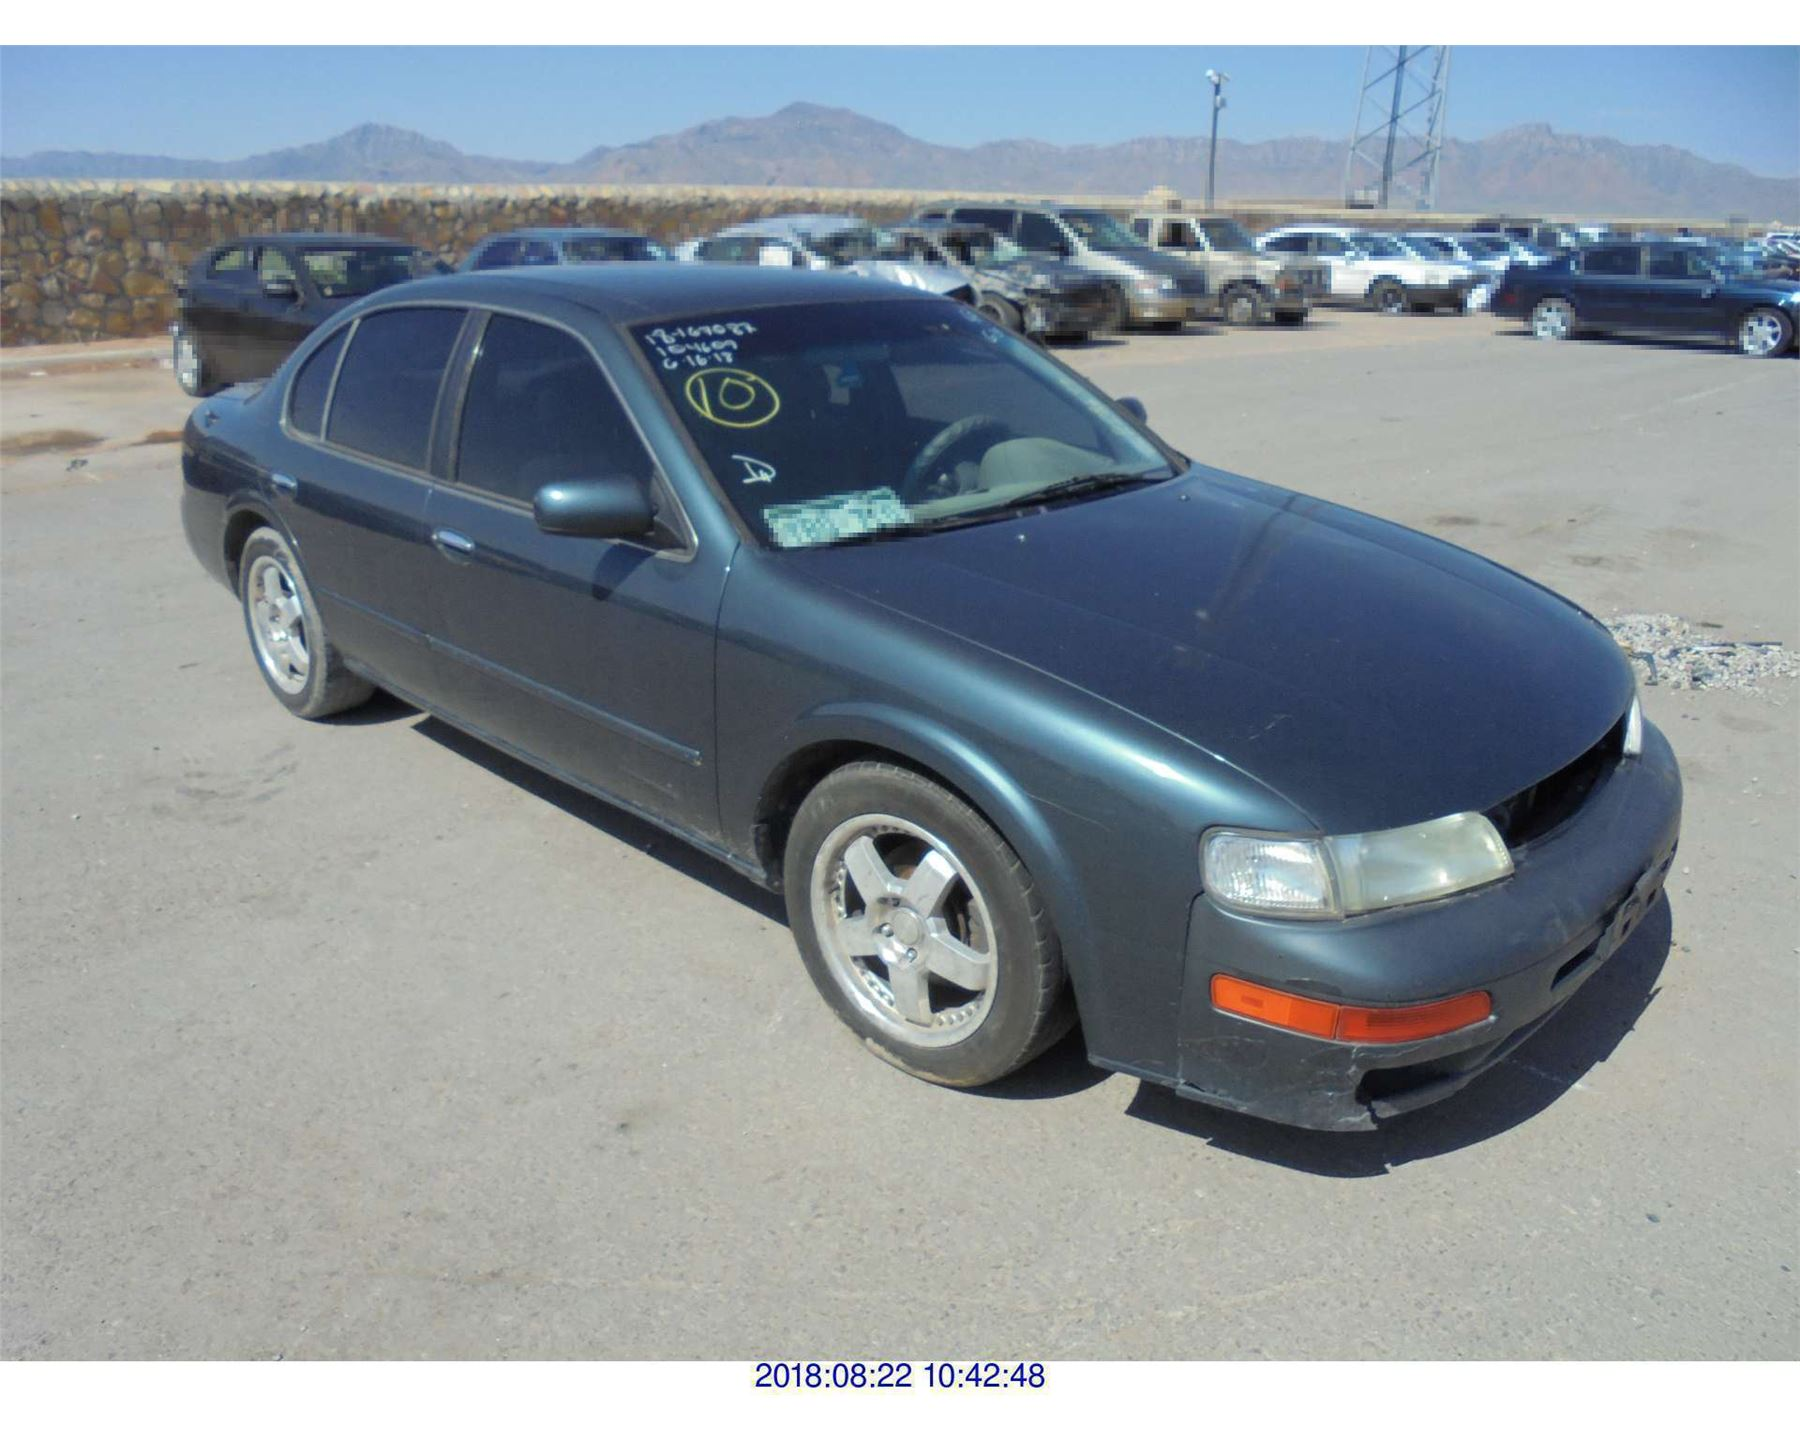 Nissan Maxima: Injured persons